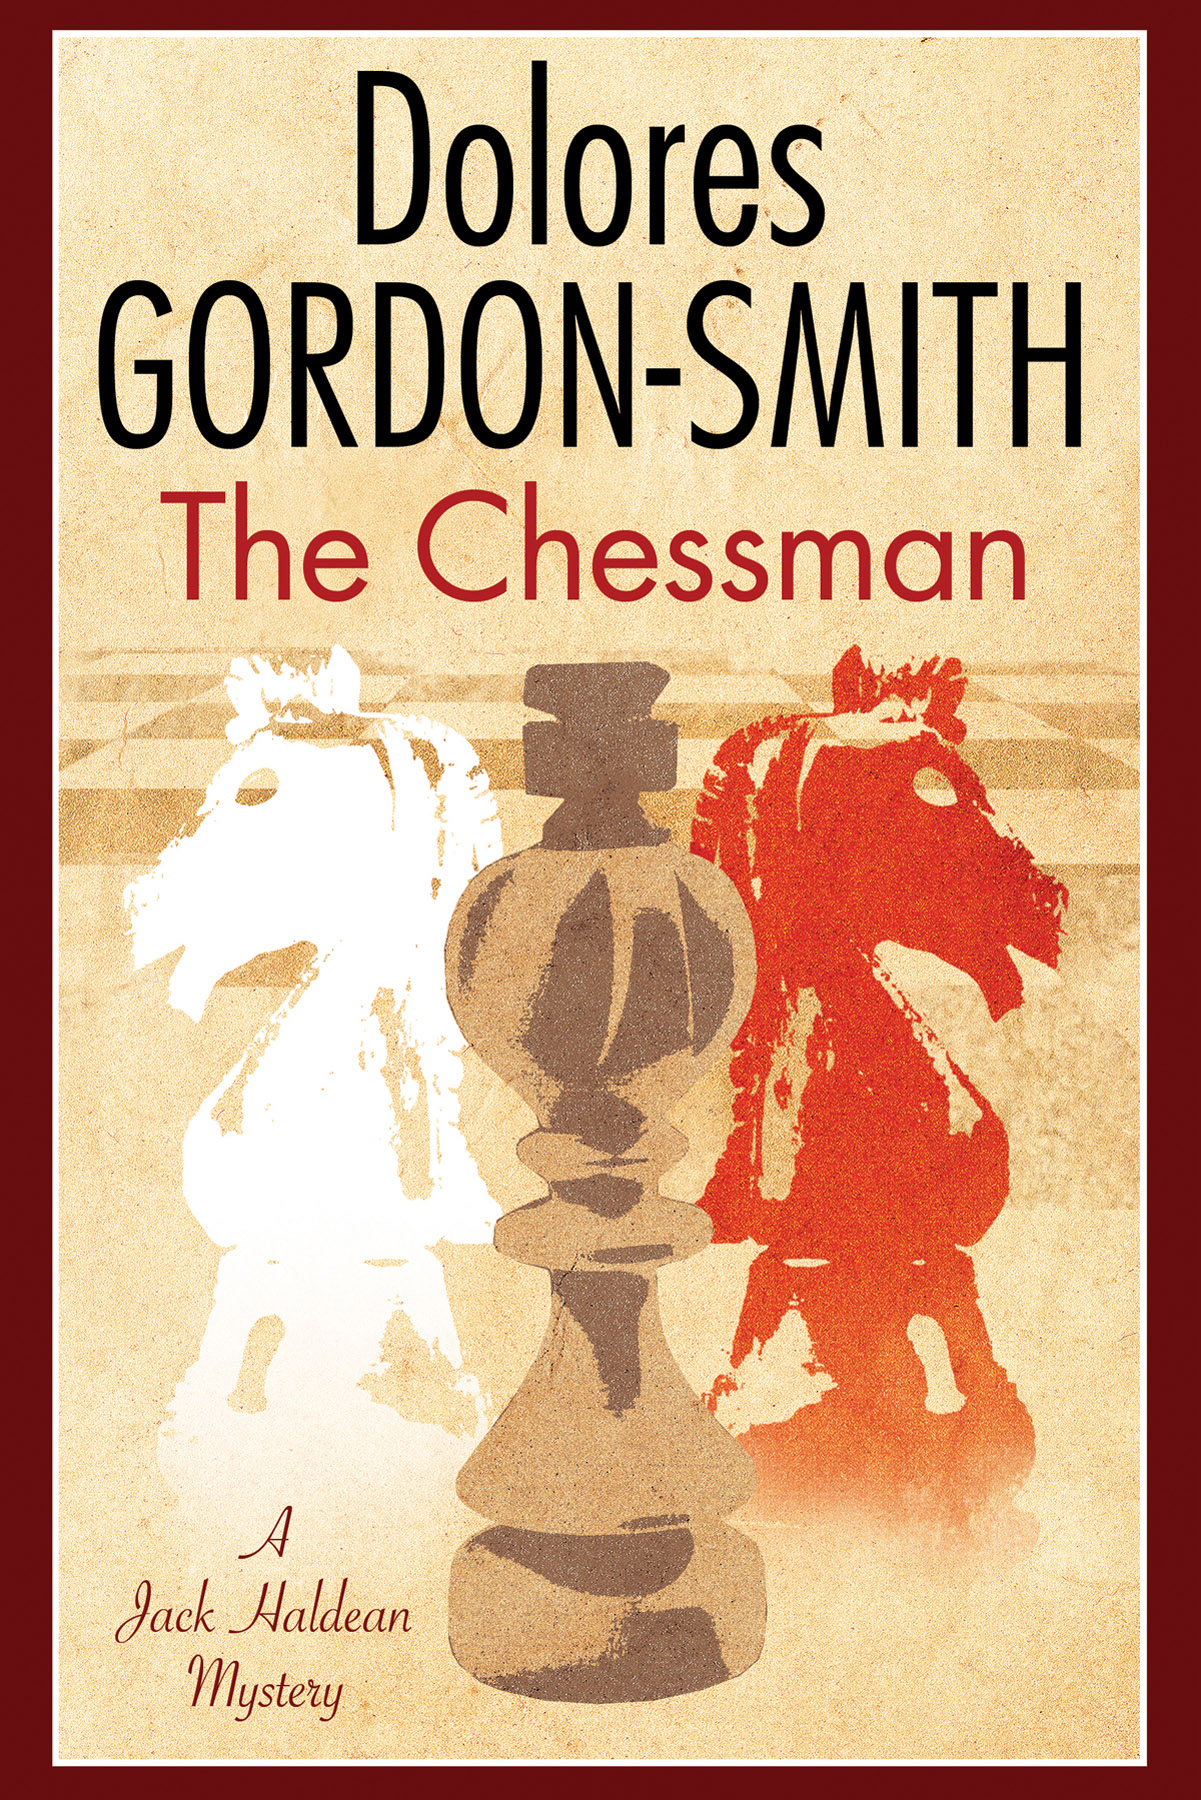 The Chessman [eBook] : a British mystery set in the 1920s